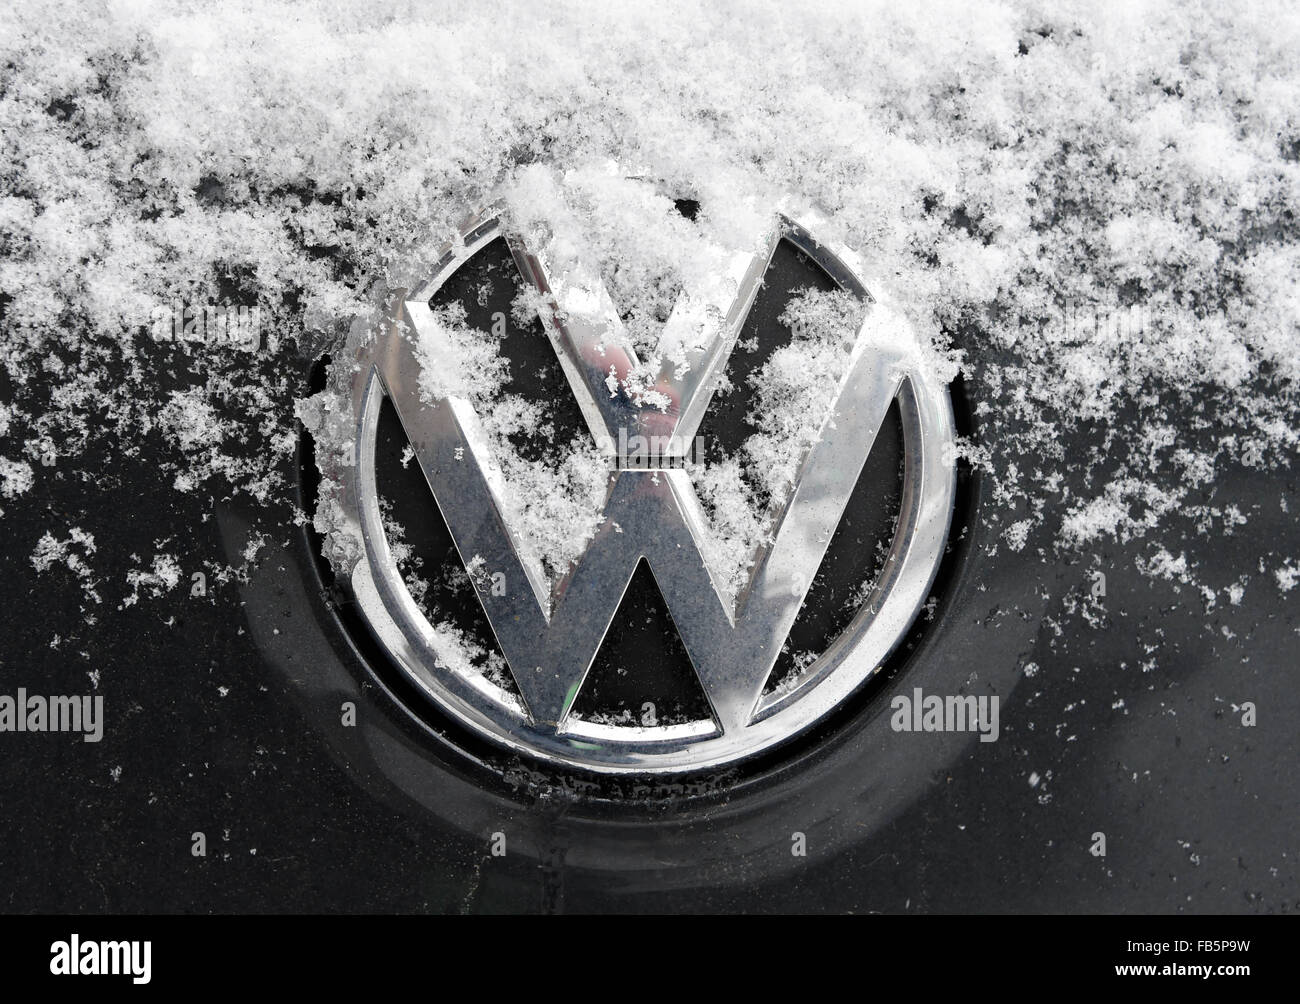 Volkswagen Stock Symbol Usa Images Meaning Of This Symbol